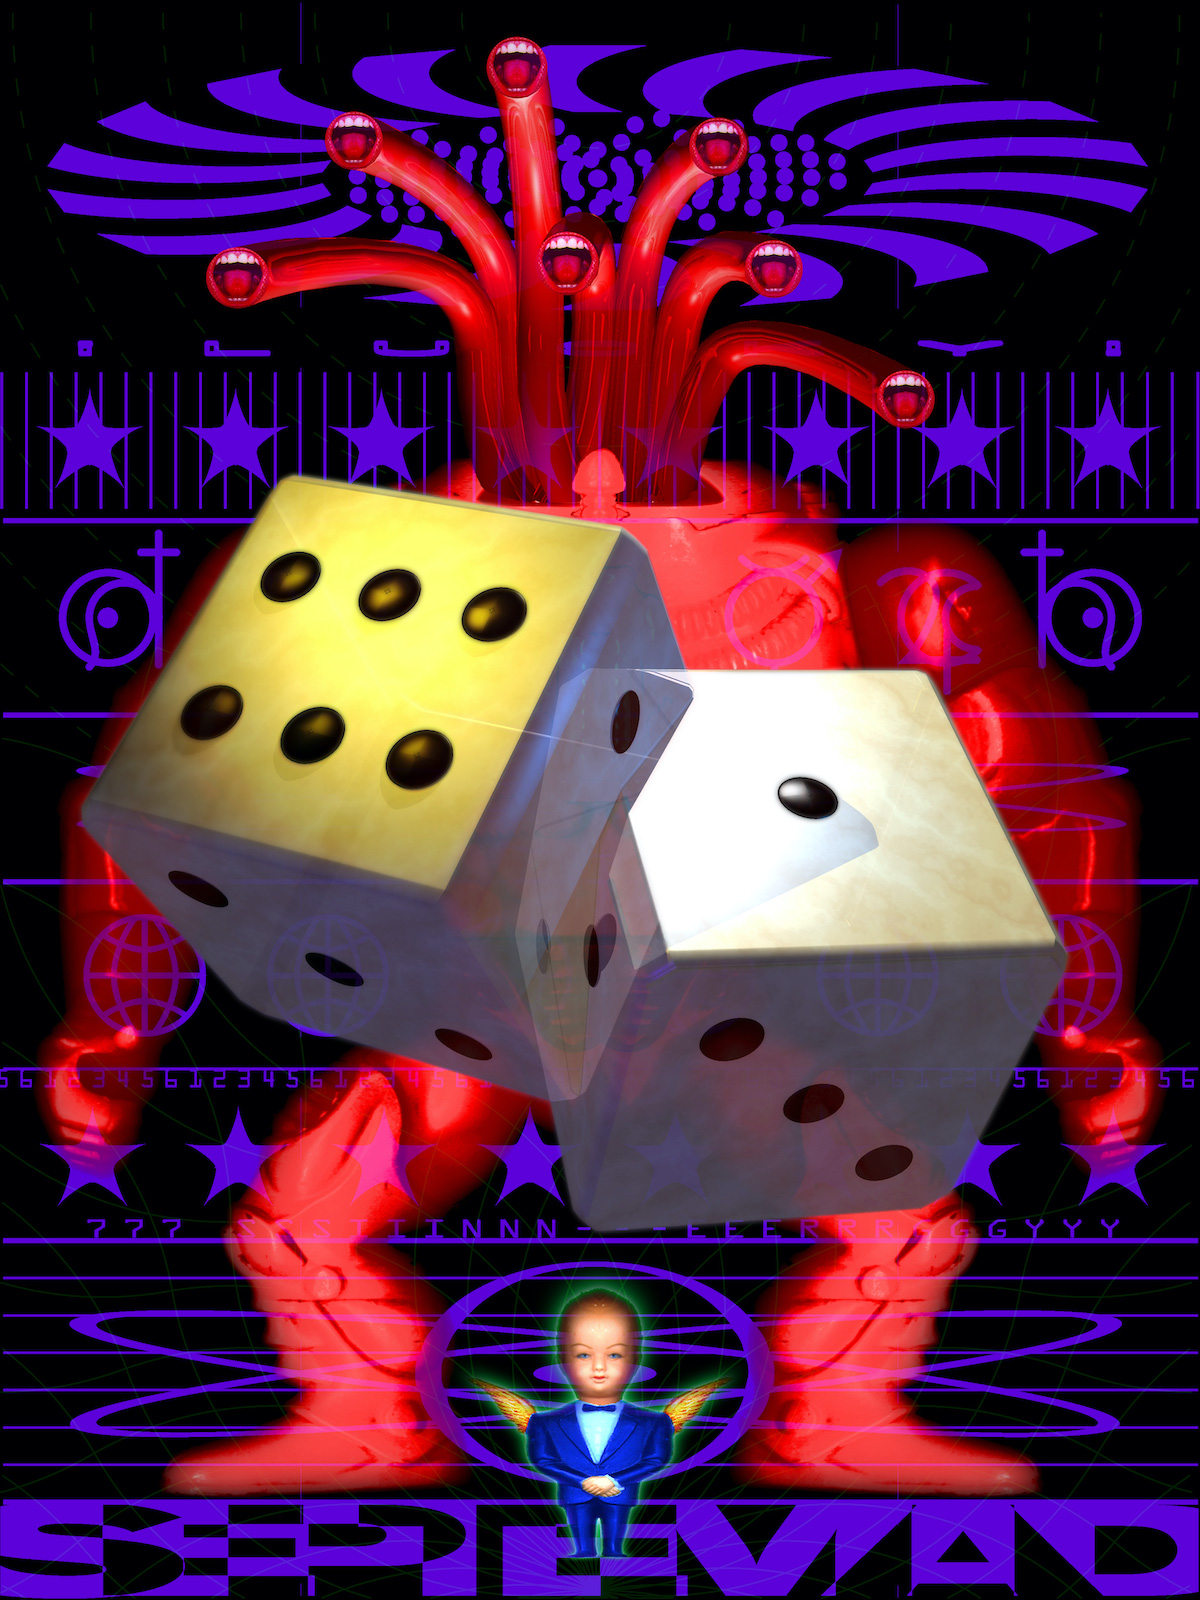 Two large dice float in front of a red figure with seven mouths. Below the figure is a baby in a suit with wings. All is set against a black and purple patterned background.